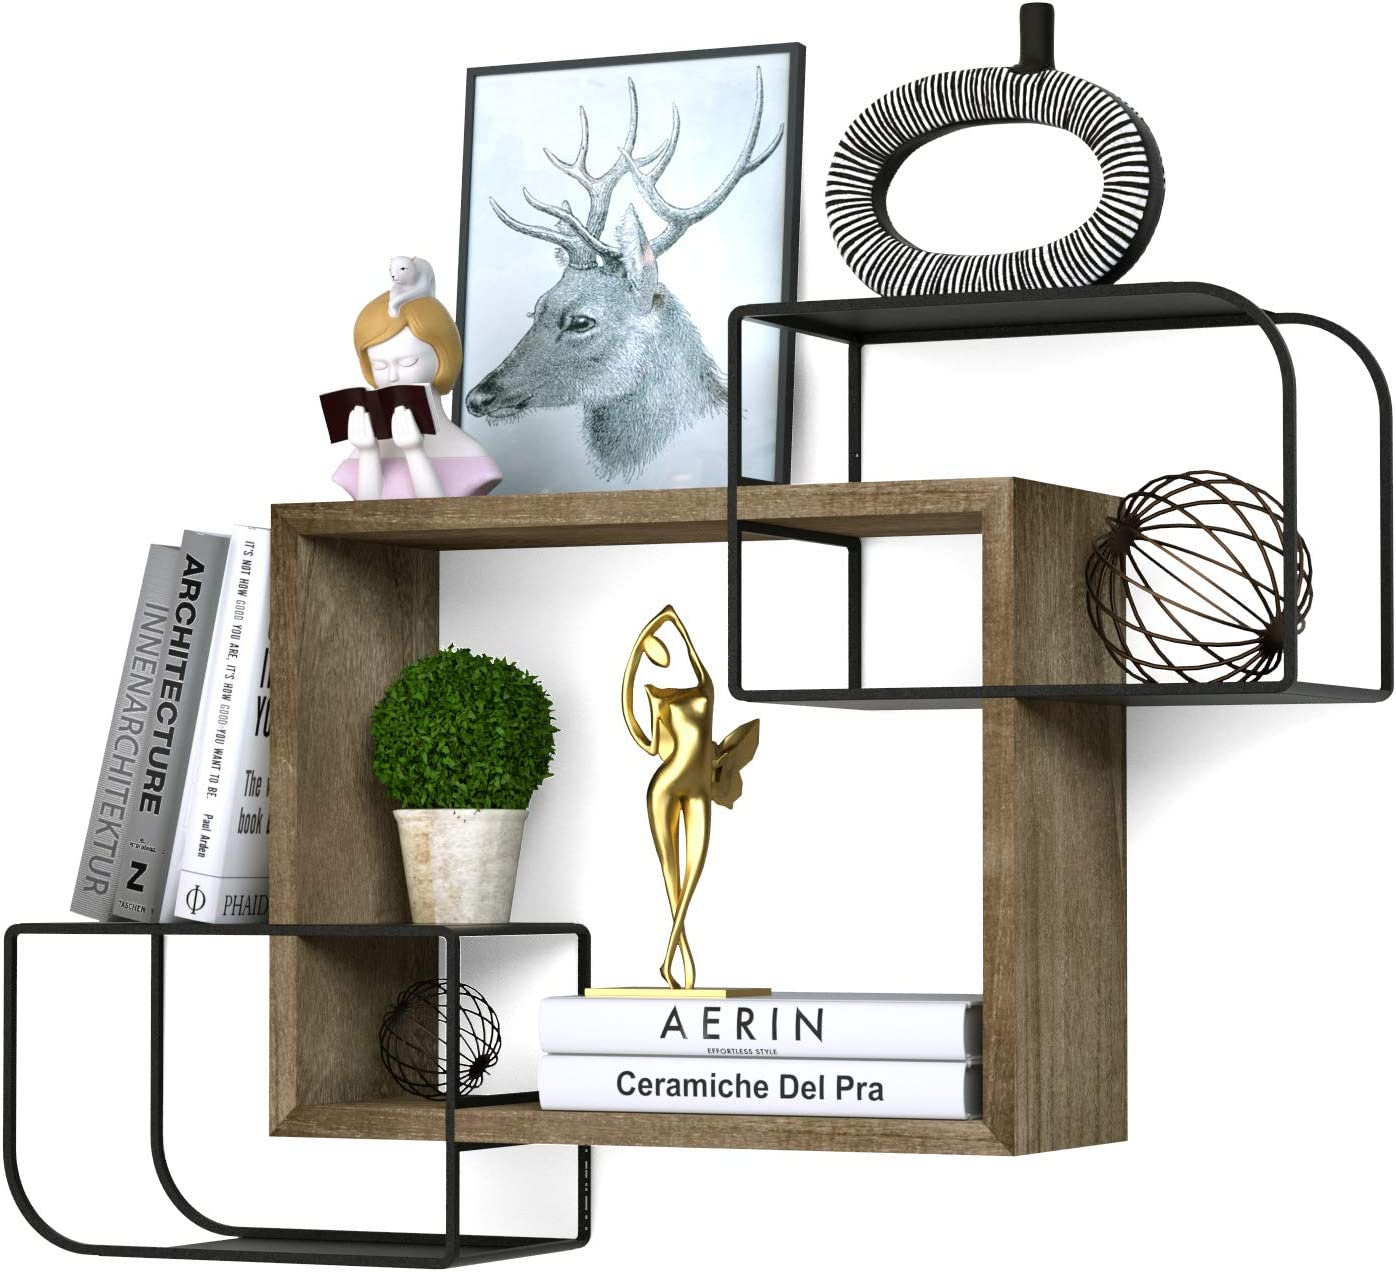 Minggoo Cubes Wall Shelves Set Intersecting Floating Shelves for Office Space, Living Room, Bedroom Decor, Durable, Easy to Install Walnut